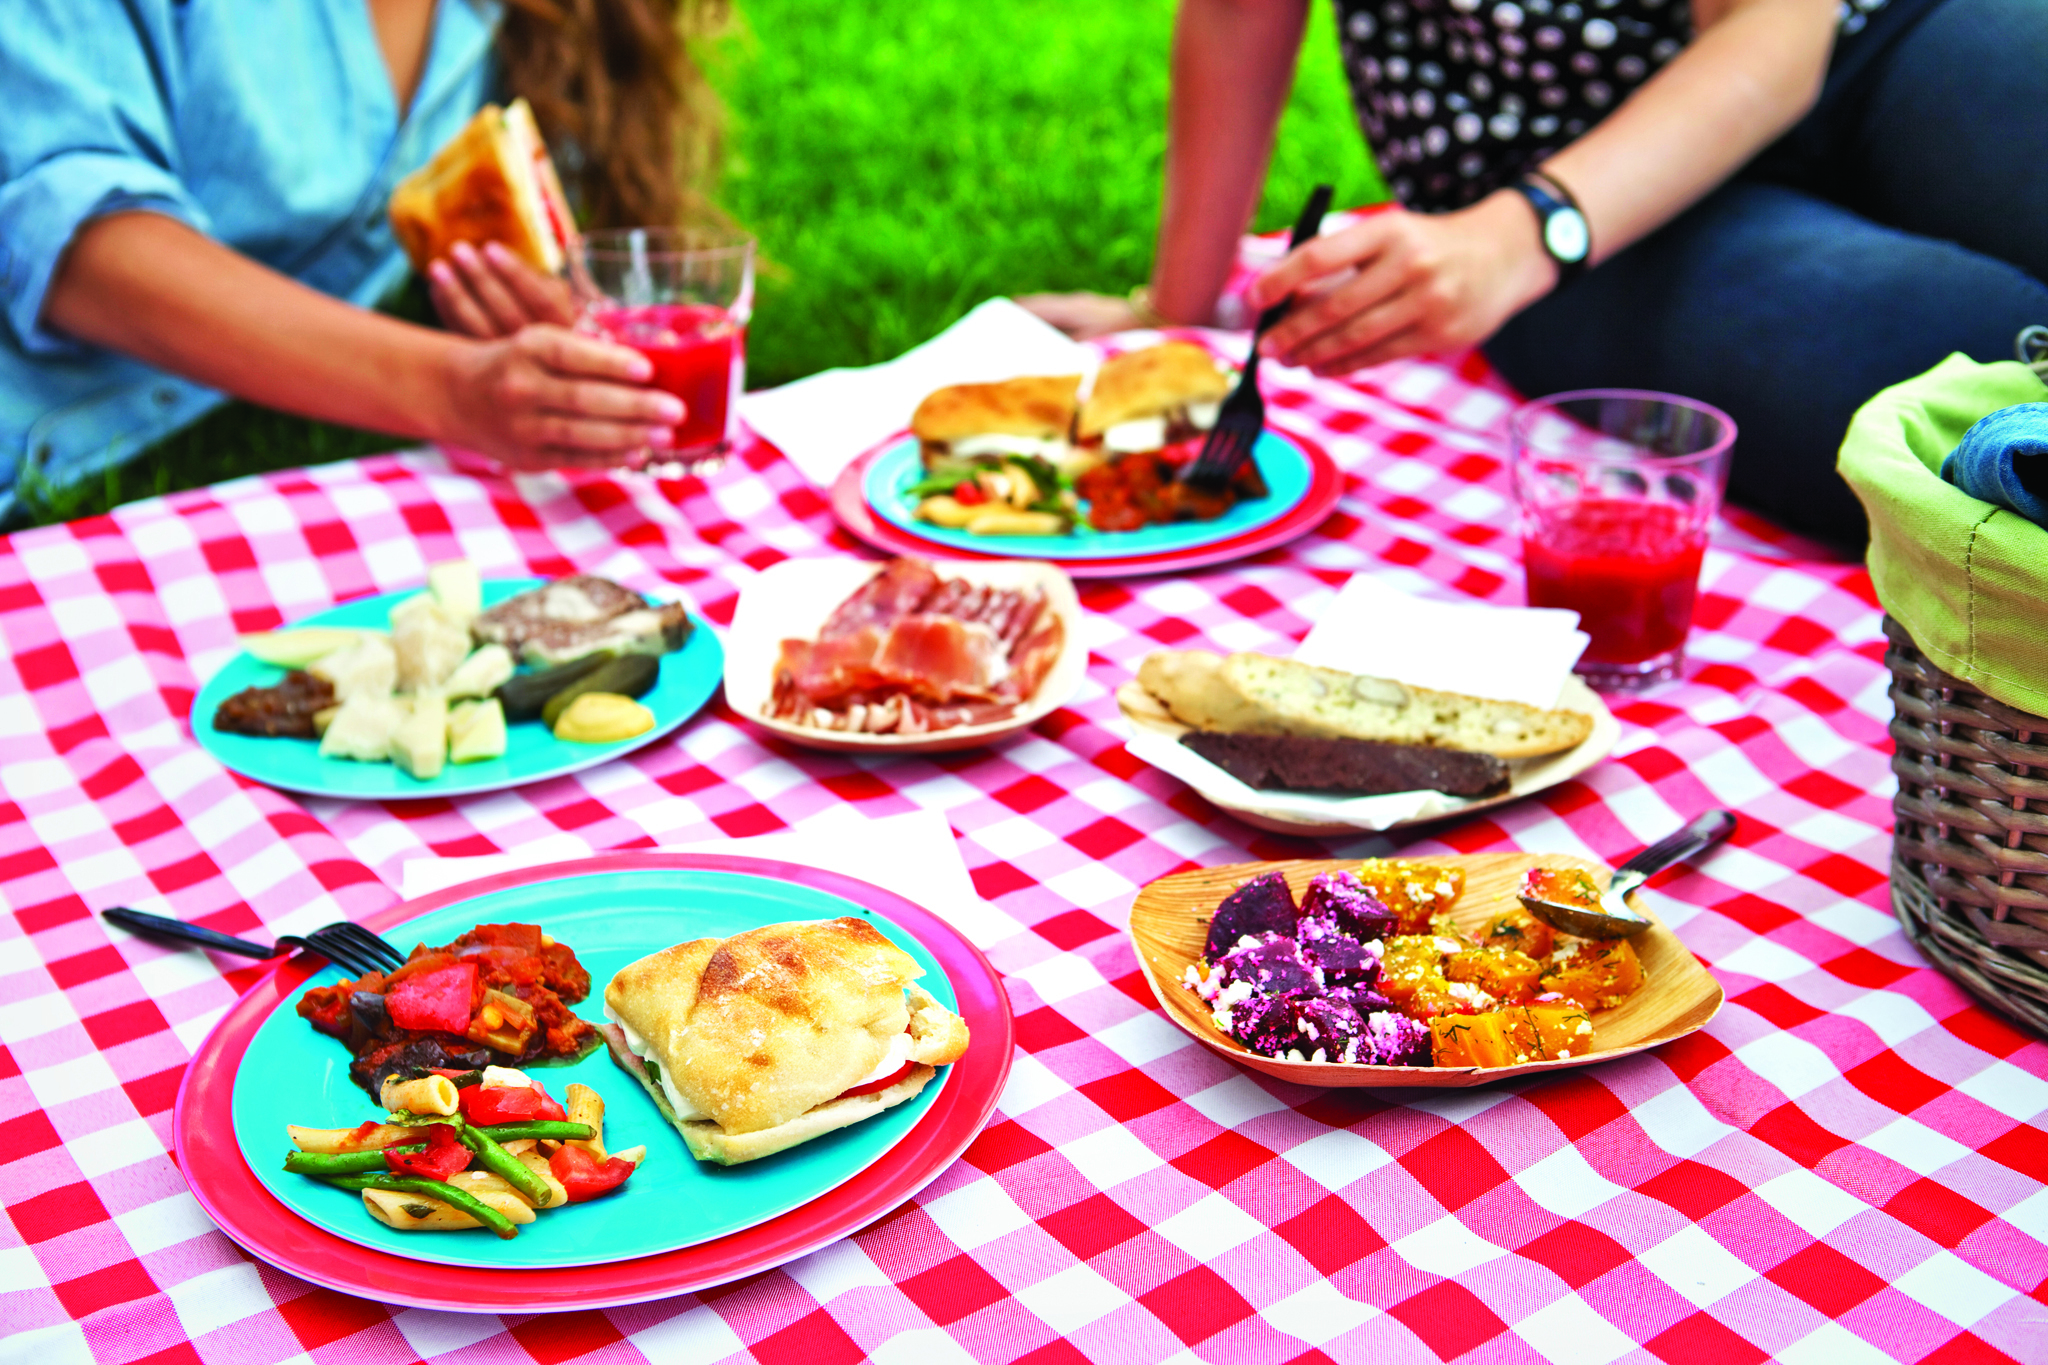 The 10 best lesser-known spots for a lovely NYC picnic